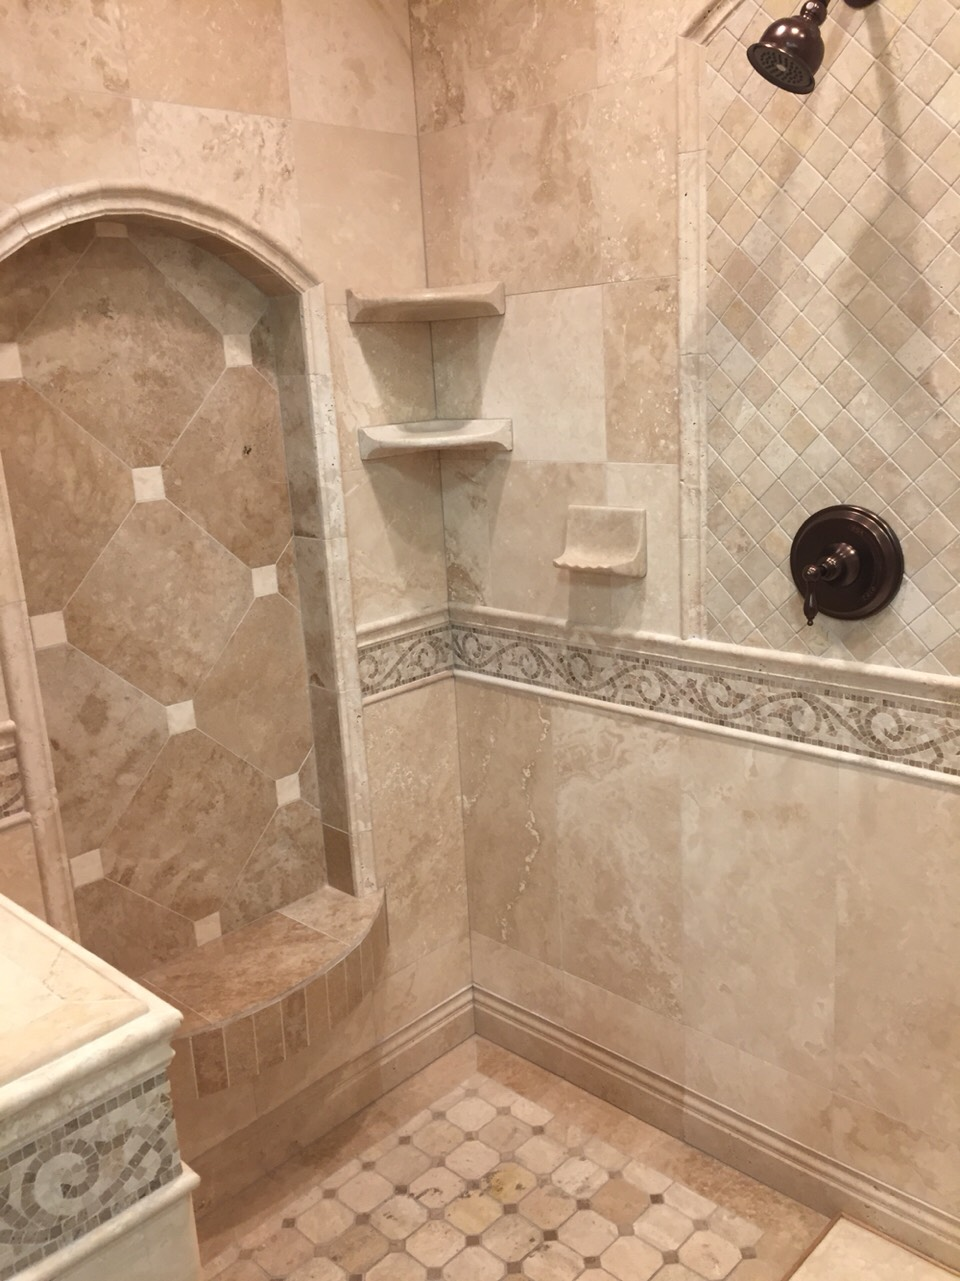 It's a beautiful dual shower that looks like something you would find in a beautiful mansion in Italy